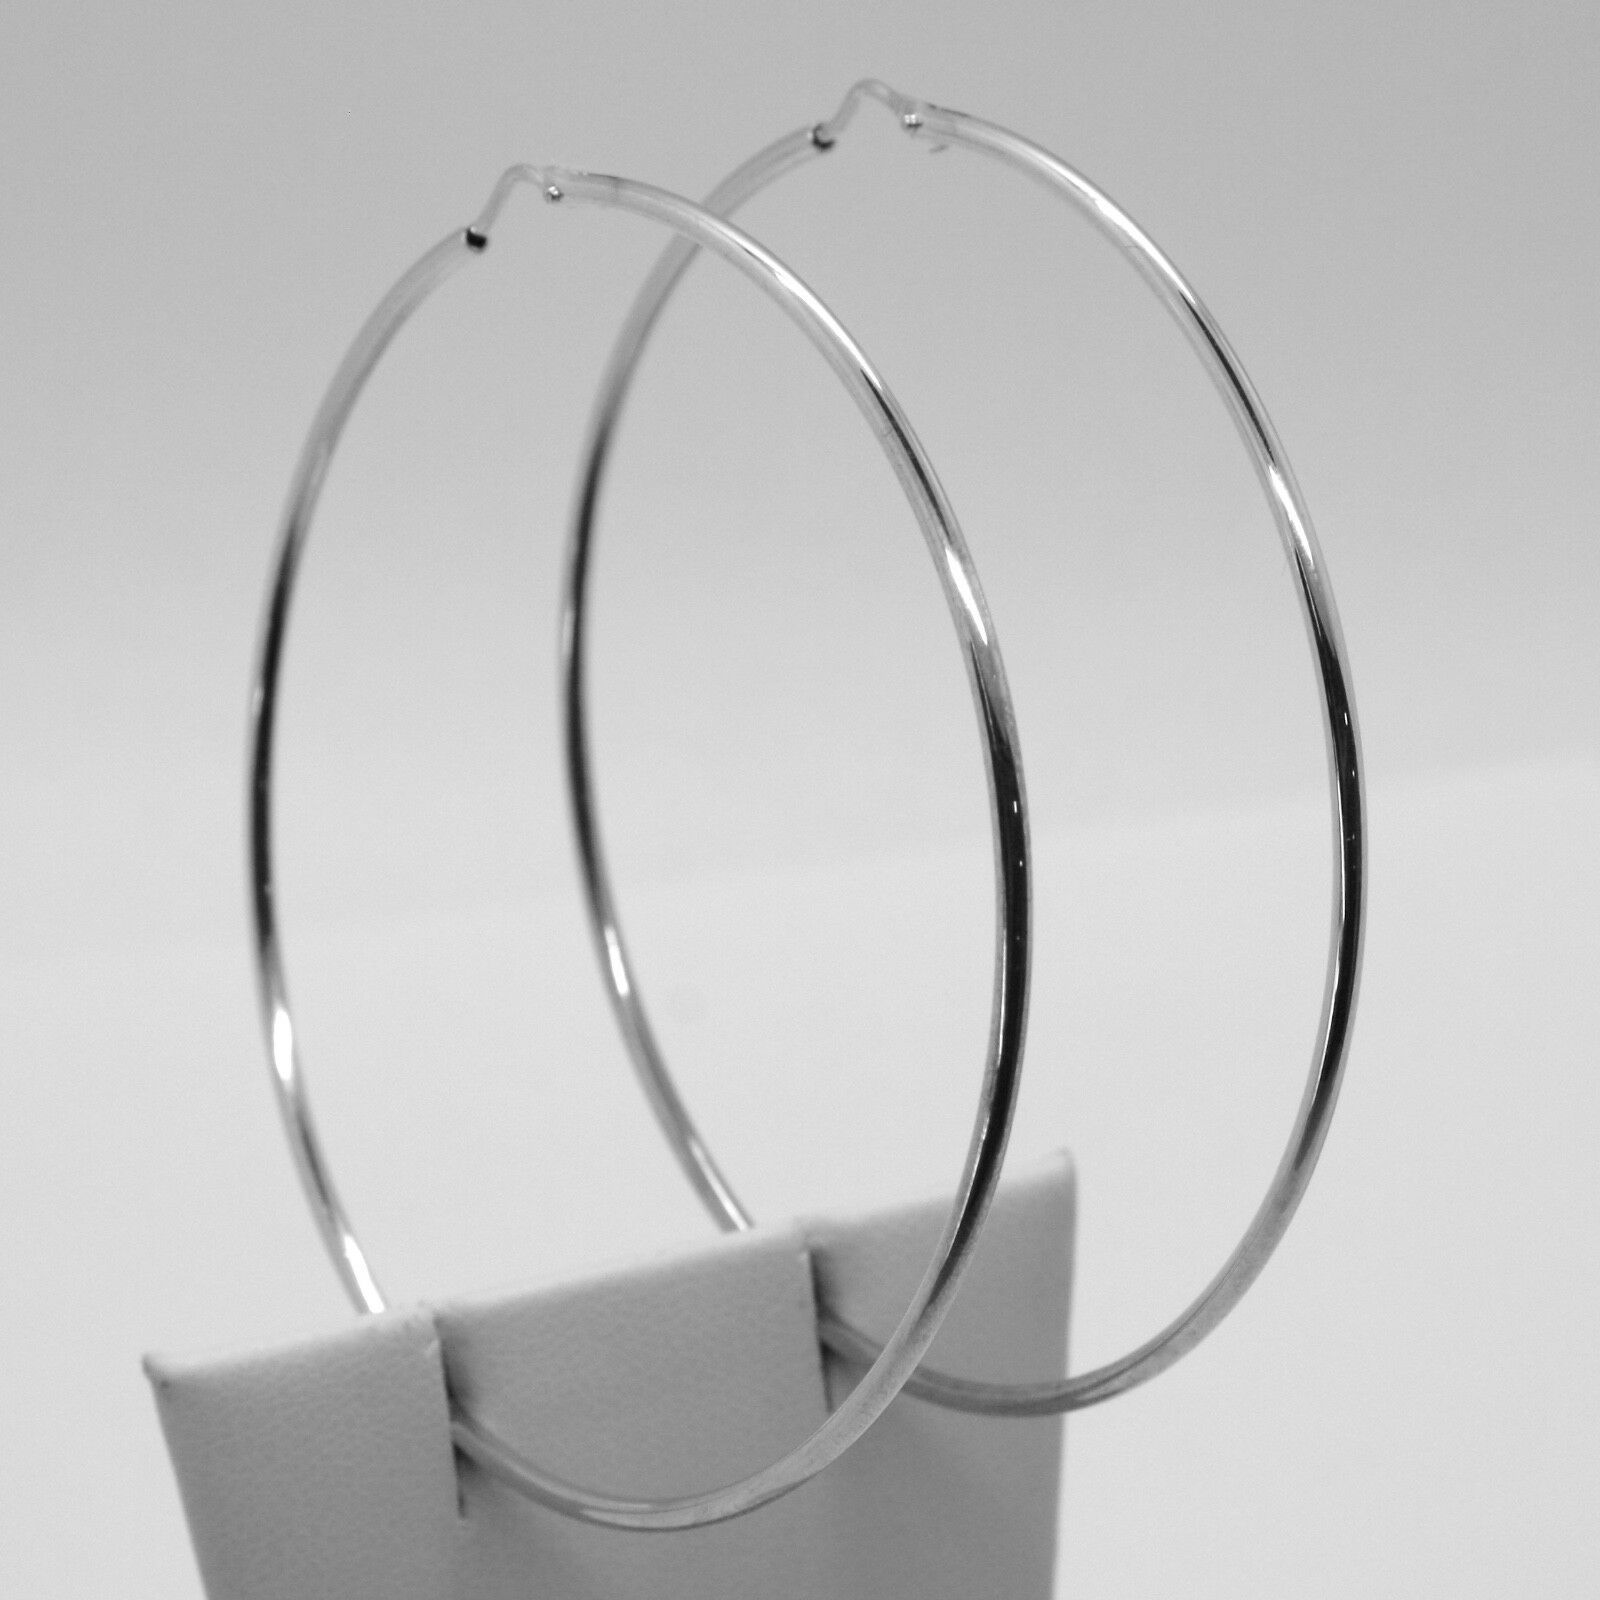 18K WHITE GOLD ROUND CIRCLE EARRINGS DIAMETER 60 MM WIDTH 1.7 MM, MADE IN ITALY